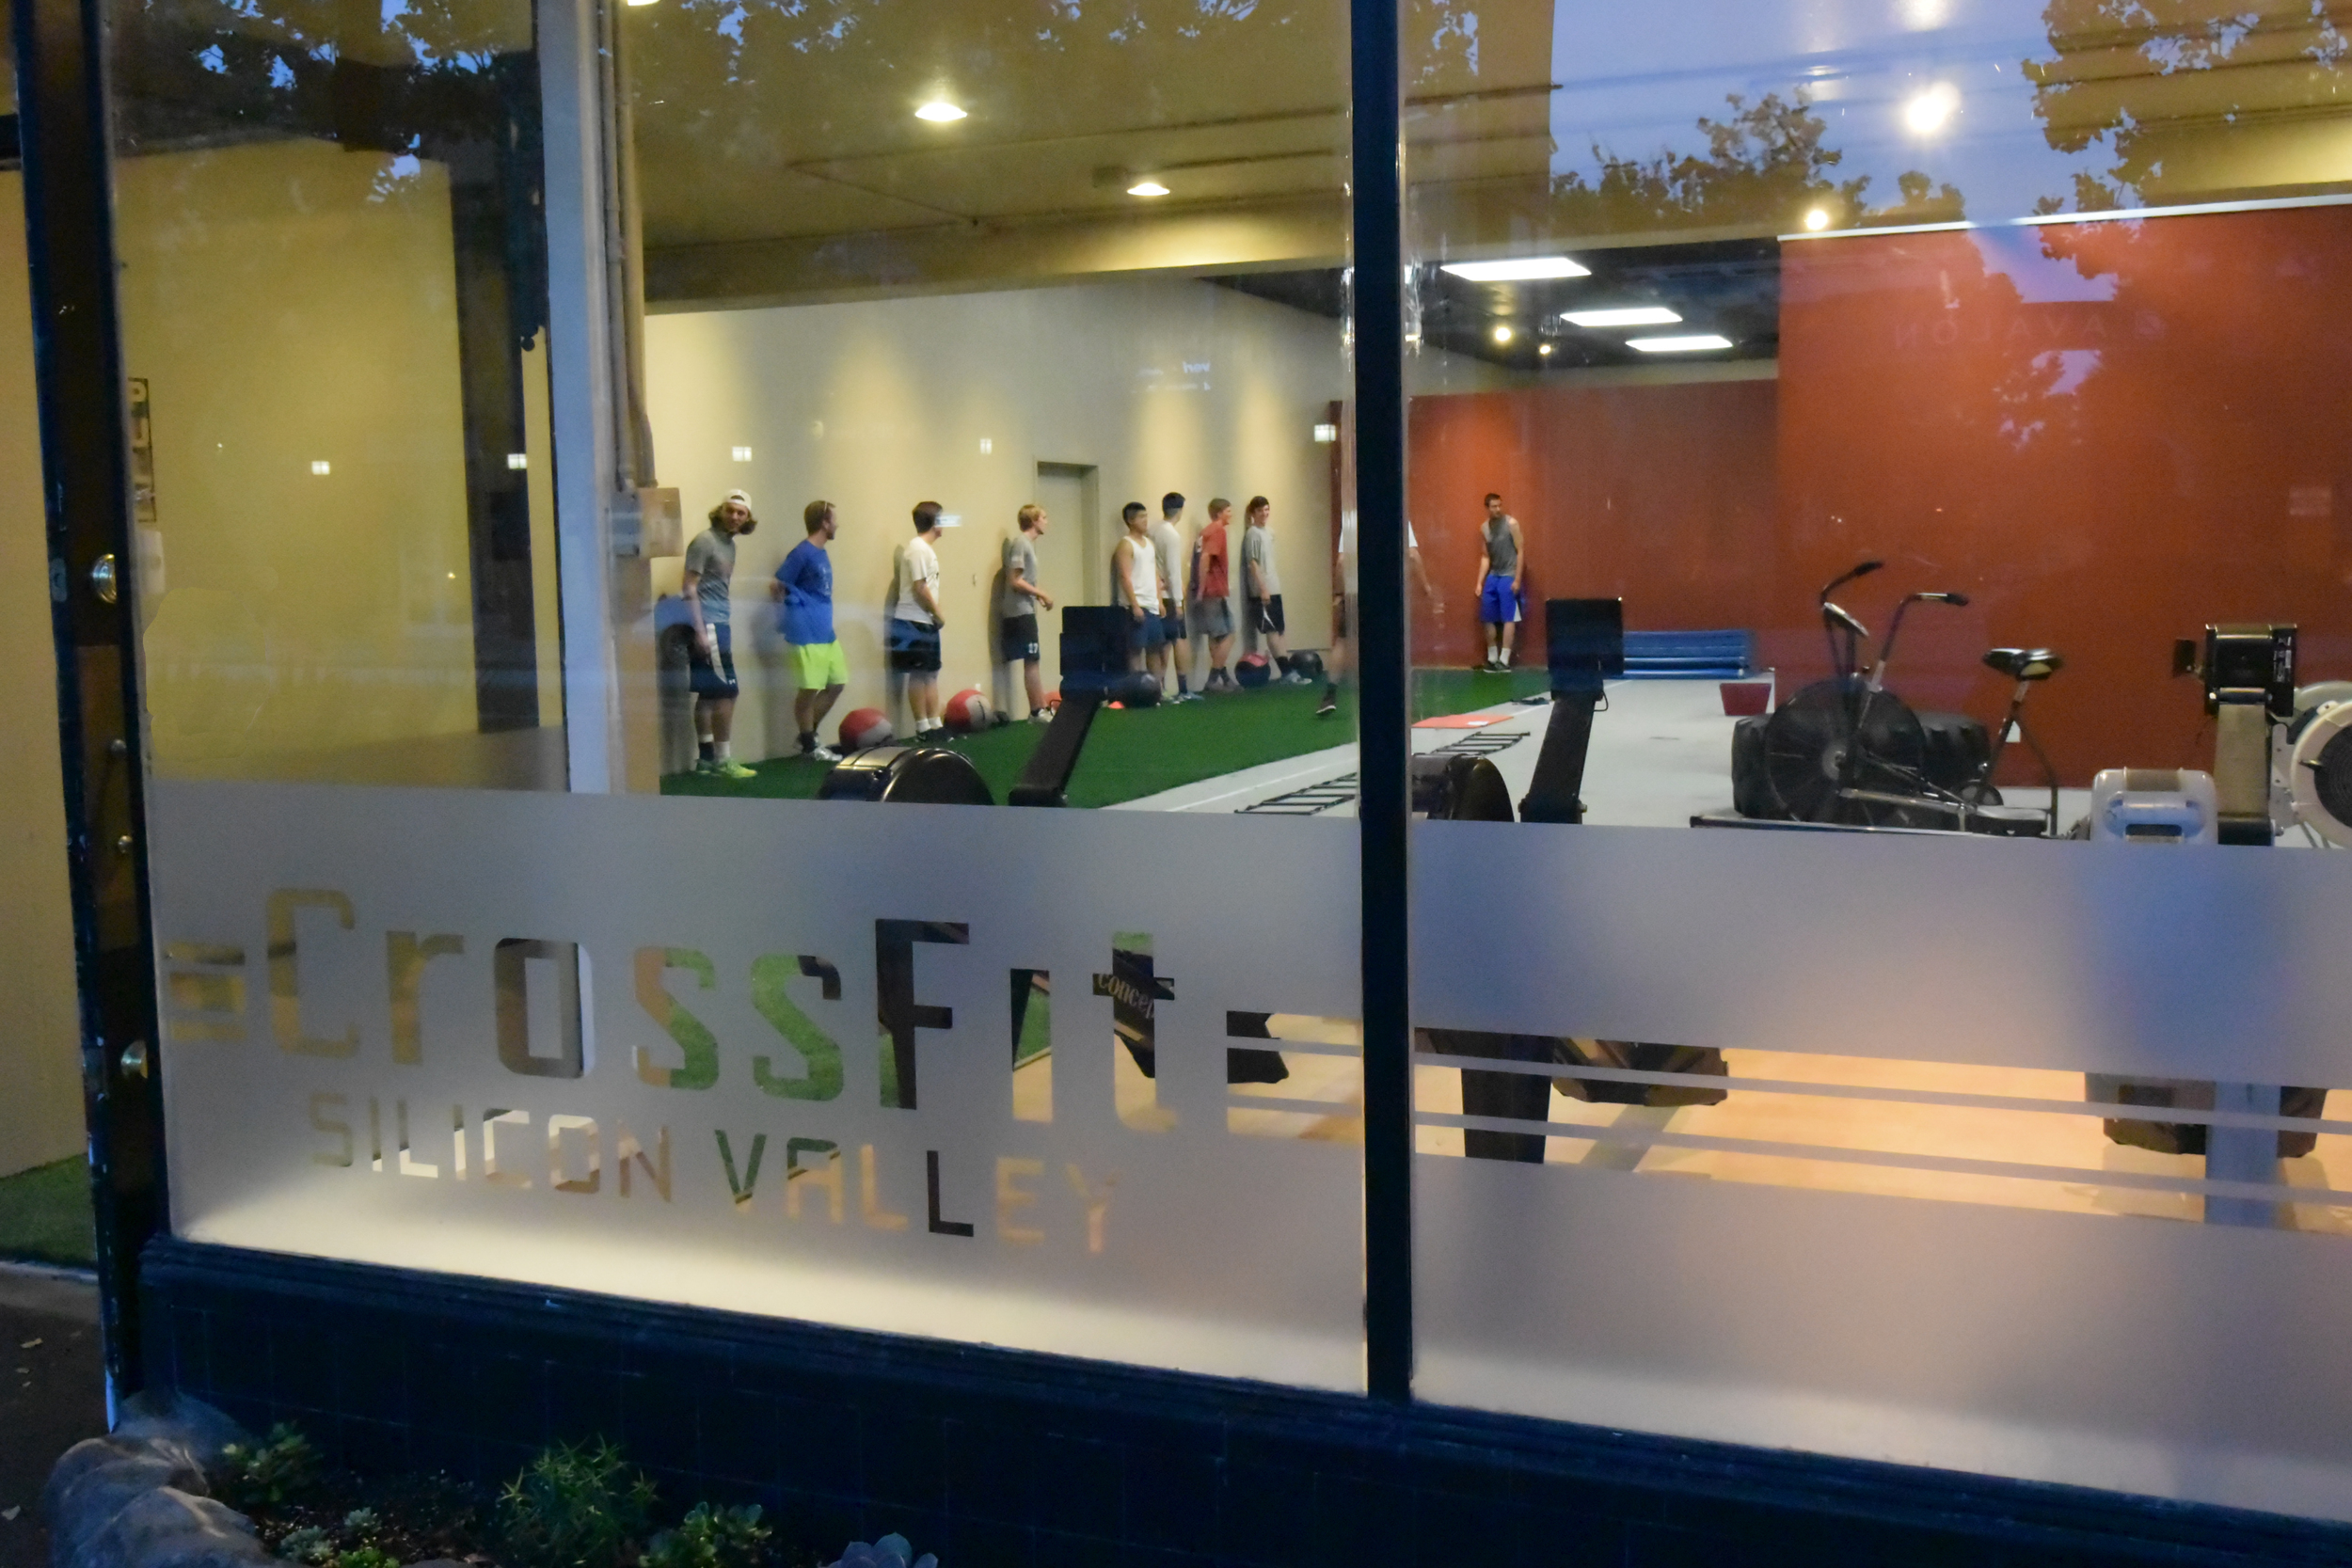 We opened more training opportunitiesfor all CFSV athletes in our larger space!